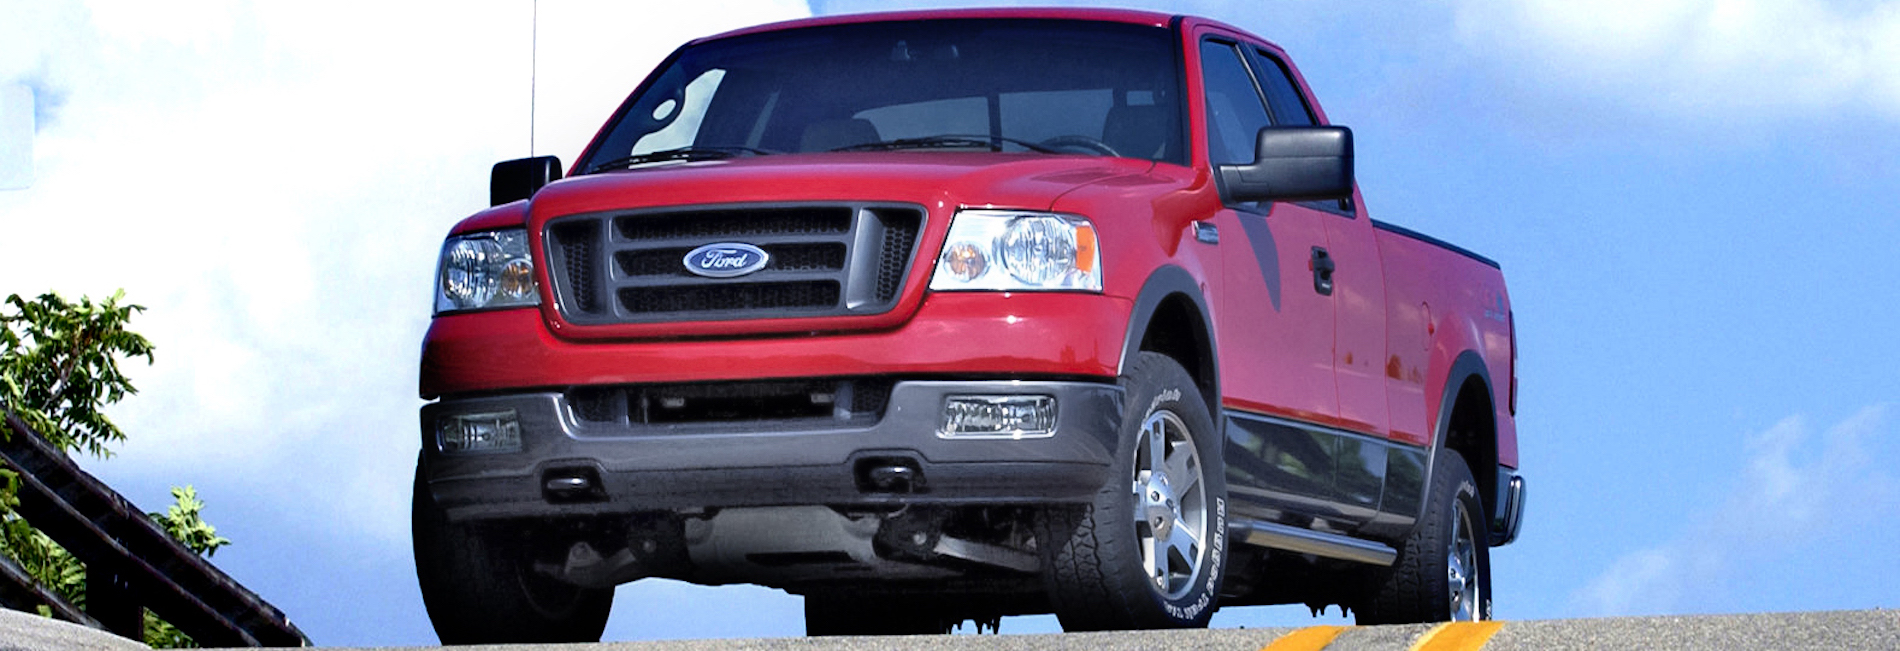 Ford-F-150-2006-1600-04